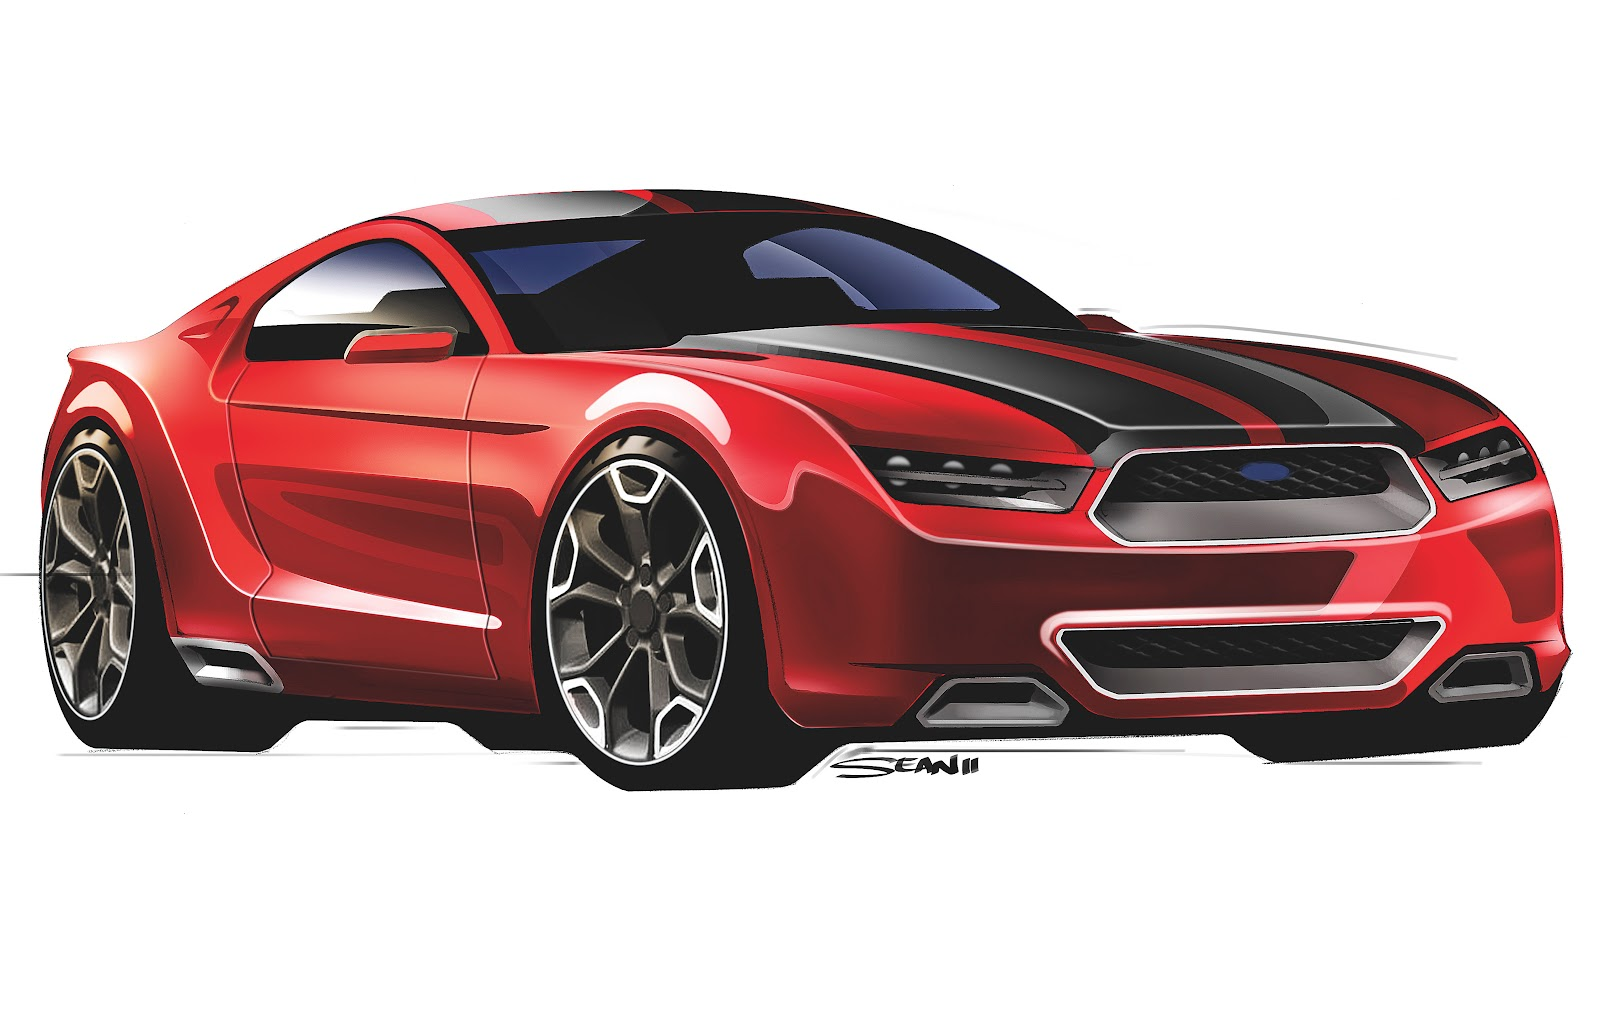 Next Mustang Sports Car For 2013 14 Woodyscarsite Com